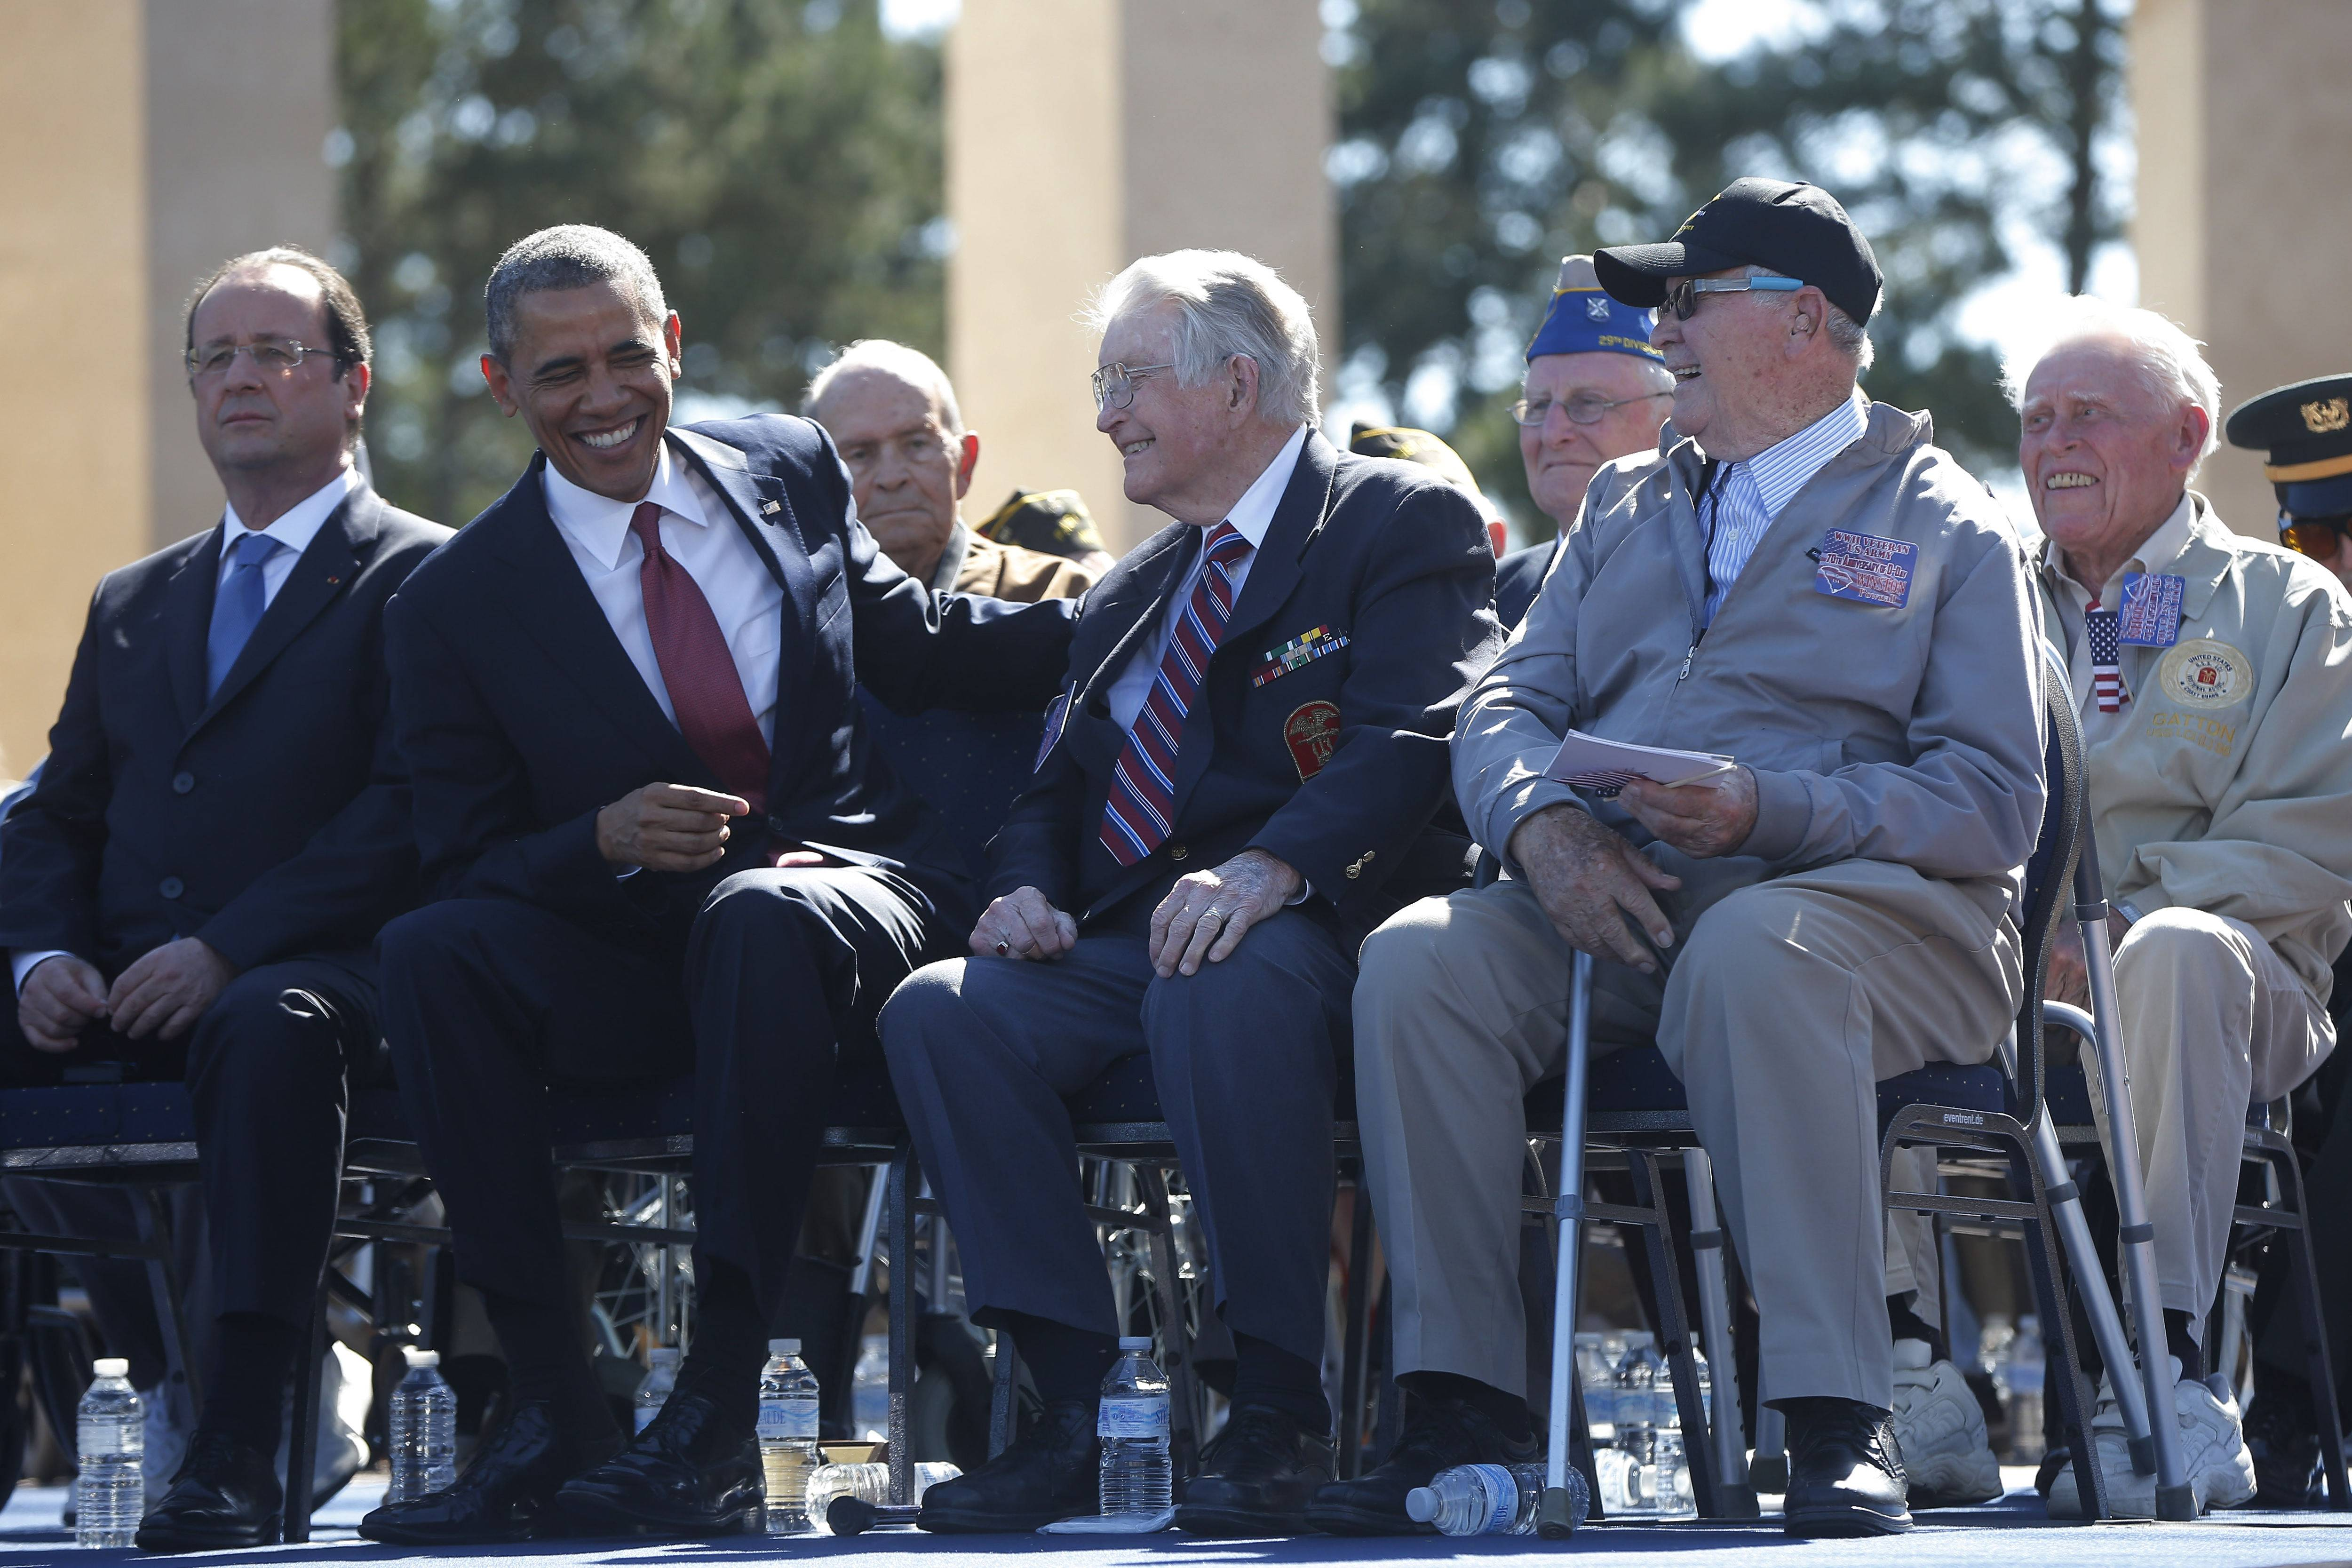 President Barack Obama and French President Francois Hollande sit onstage with veterans, at Normandy American Cemetery at Omaha Beach as he participates in the 70th anniversary of D-Day.